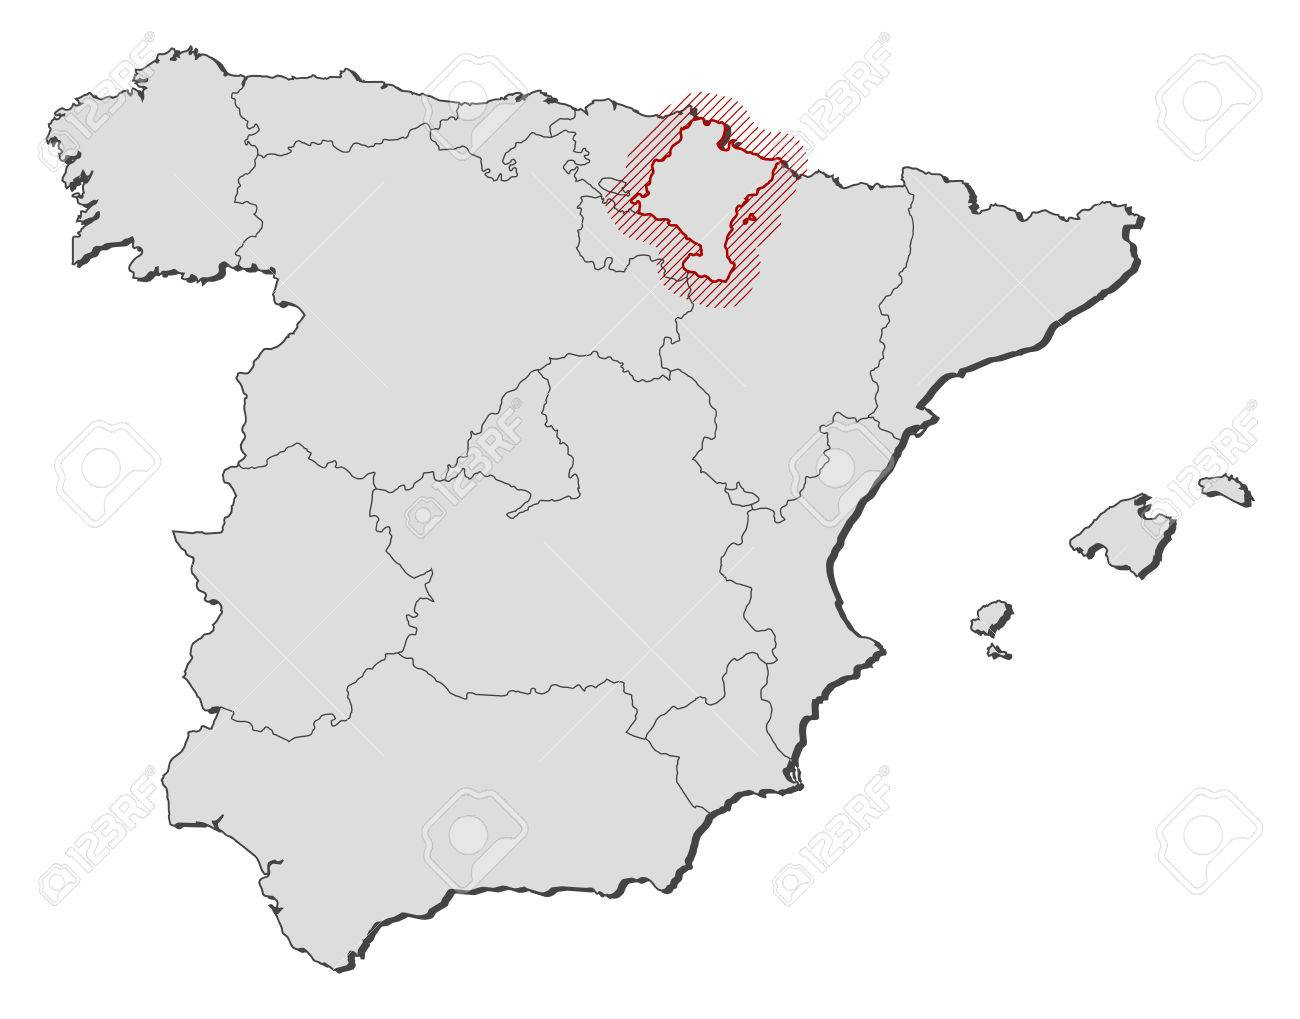 Map Of Spain With The Provinces Navarre Is Highlighted By A